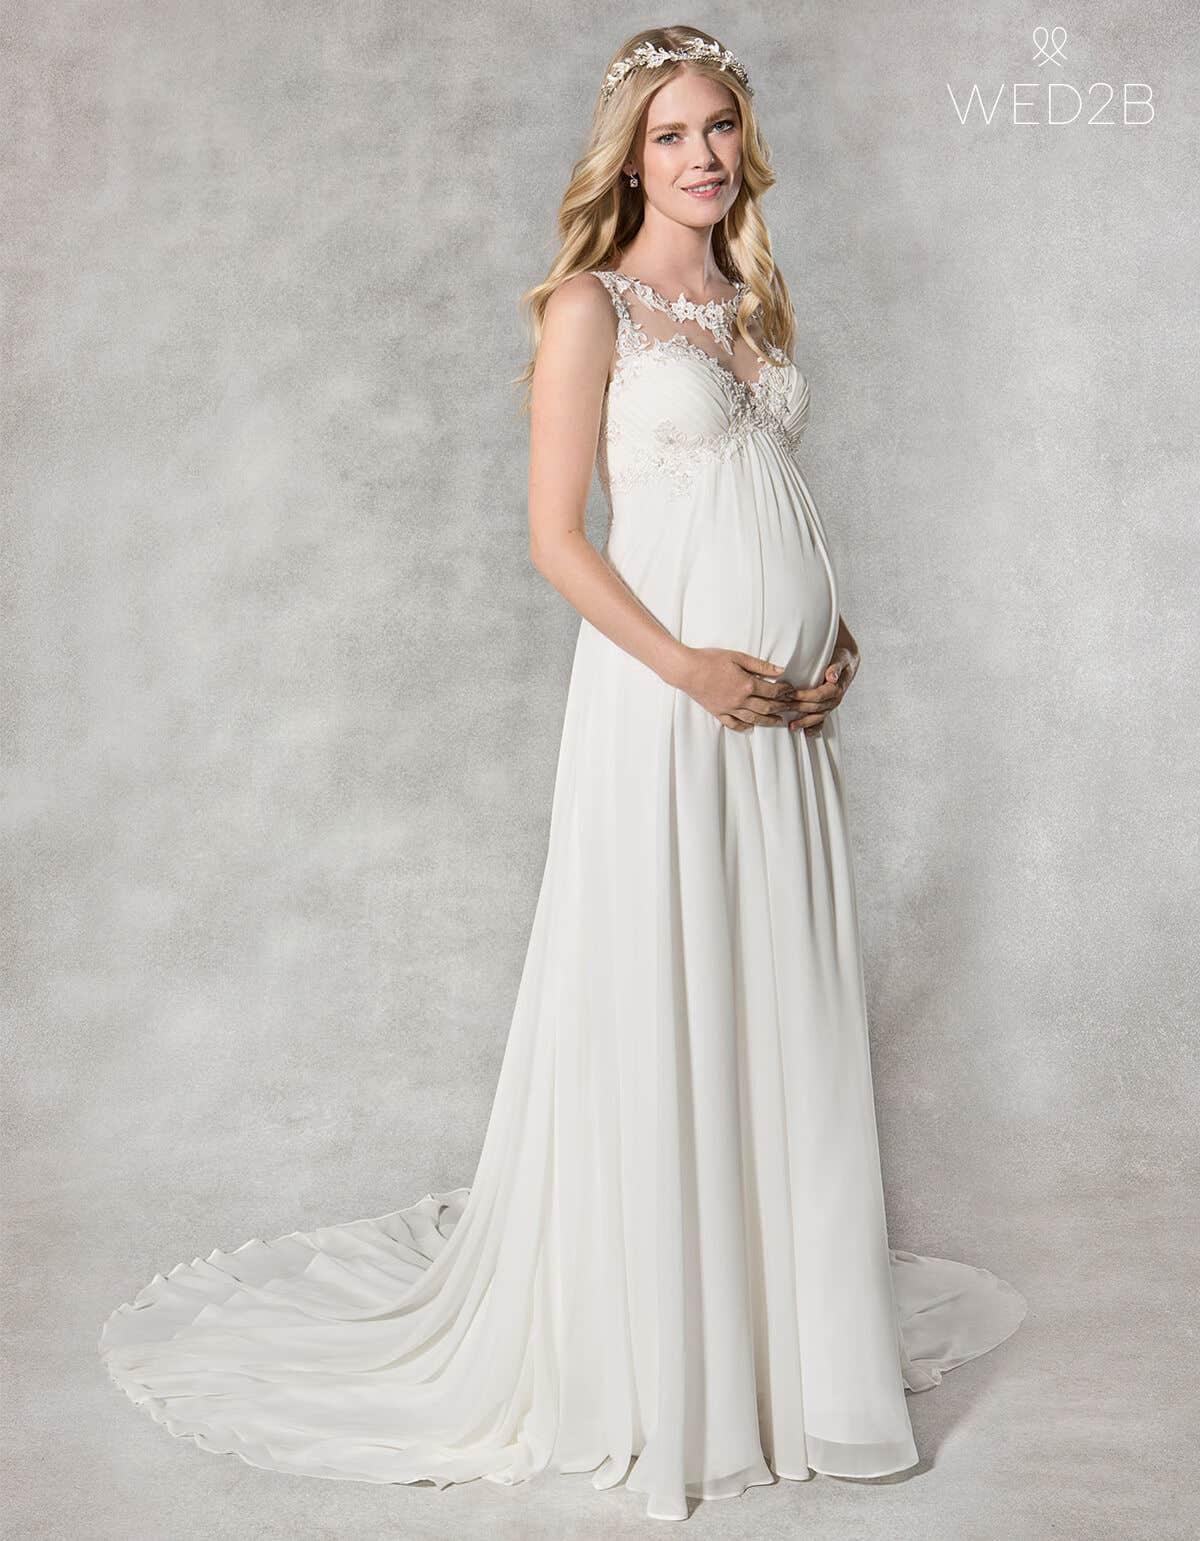 83ecae2f2a255 The wedding dress styles guide to… a maternity wedding dress | WED2B ...